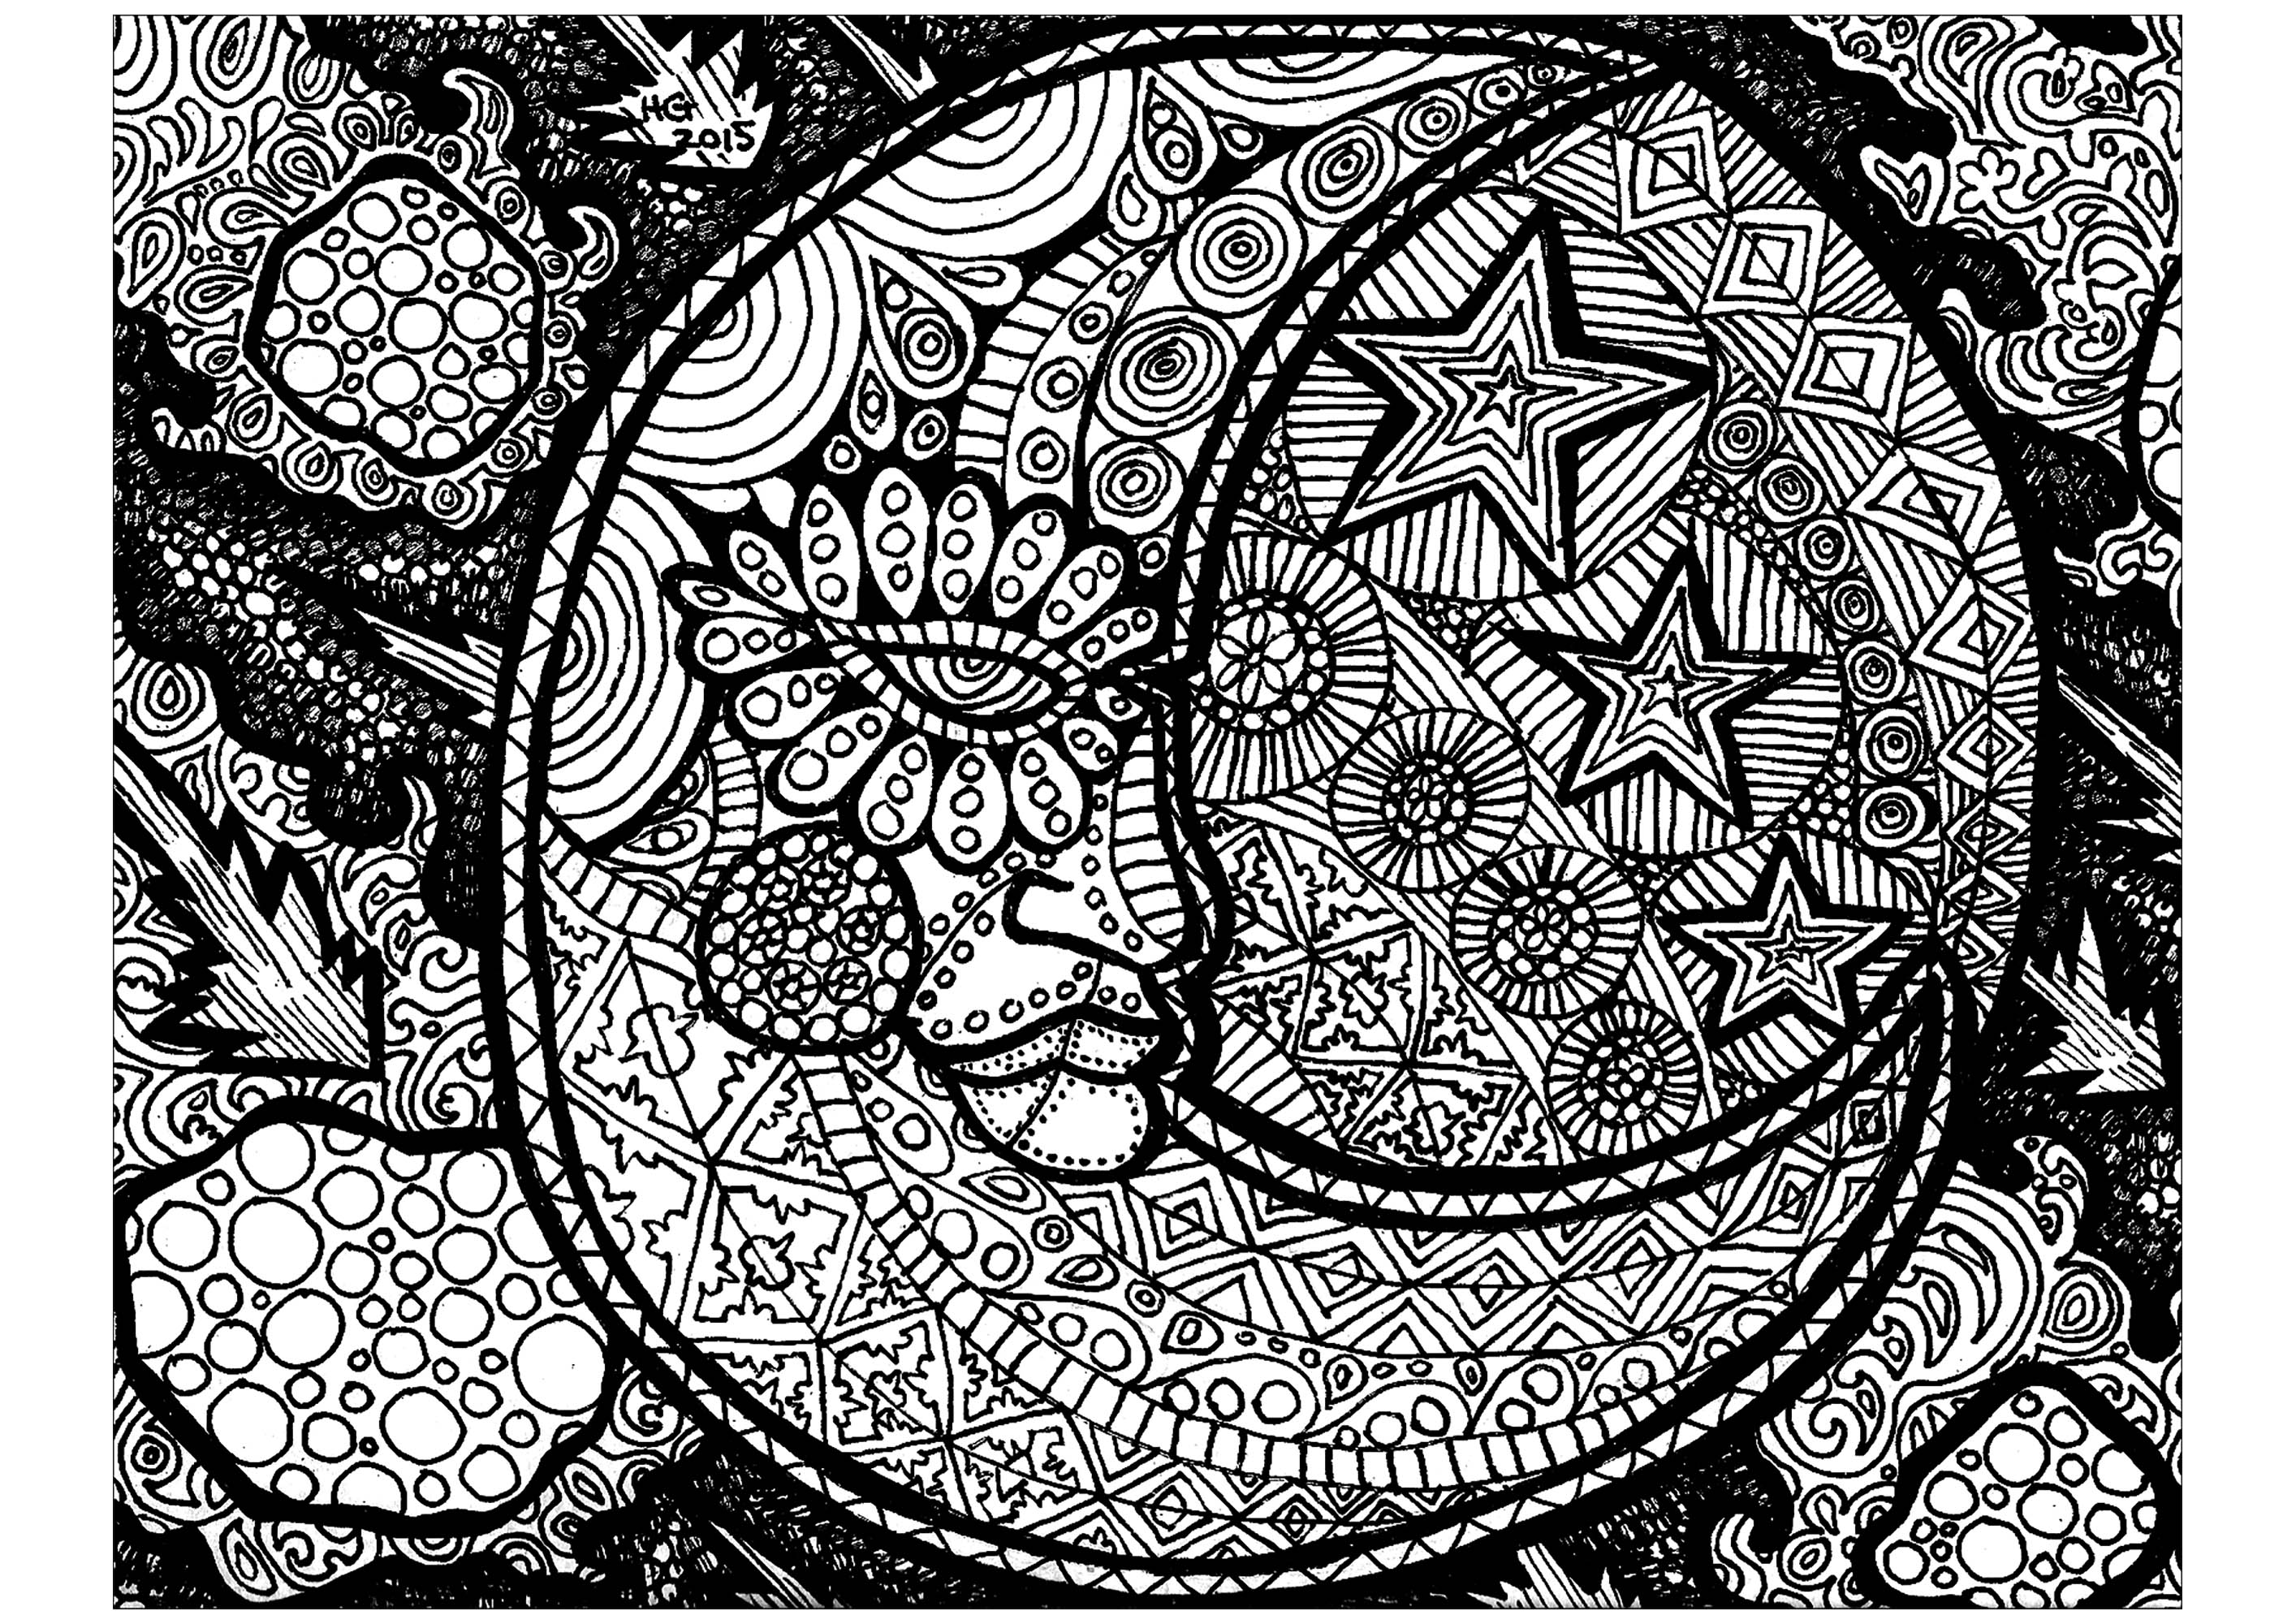 zentangle coloring pages free printable printable zentangle coloring pages free coloring home zentangle coloring printable free pages